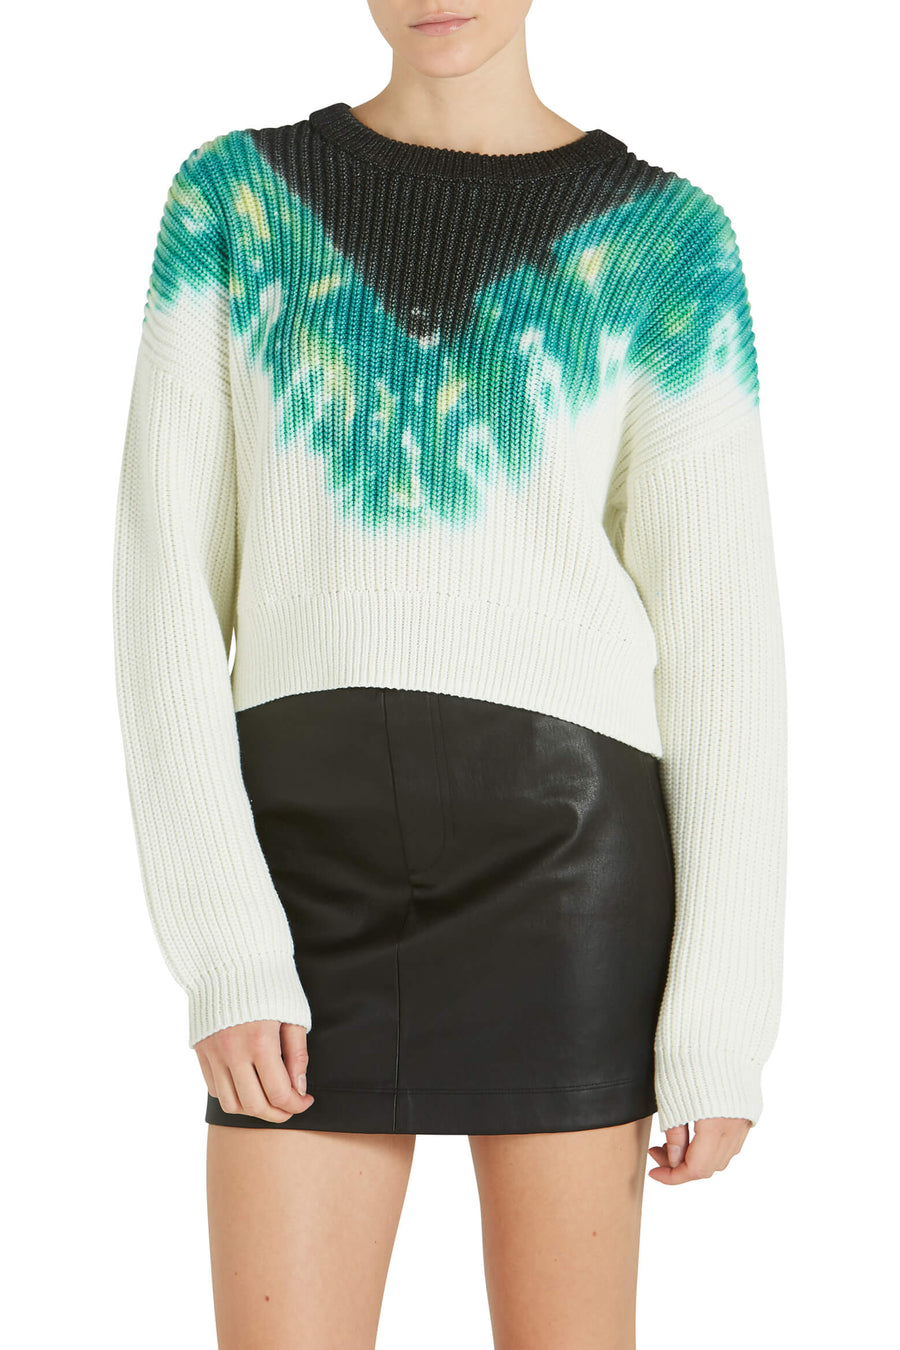 A.L.C. Elinor Tie Dye Sweater from The New Trend